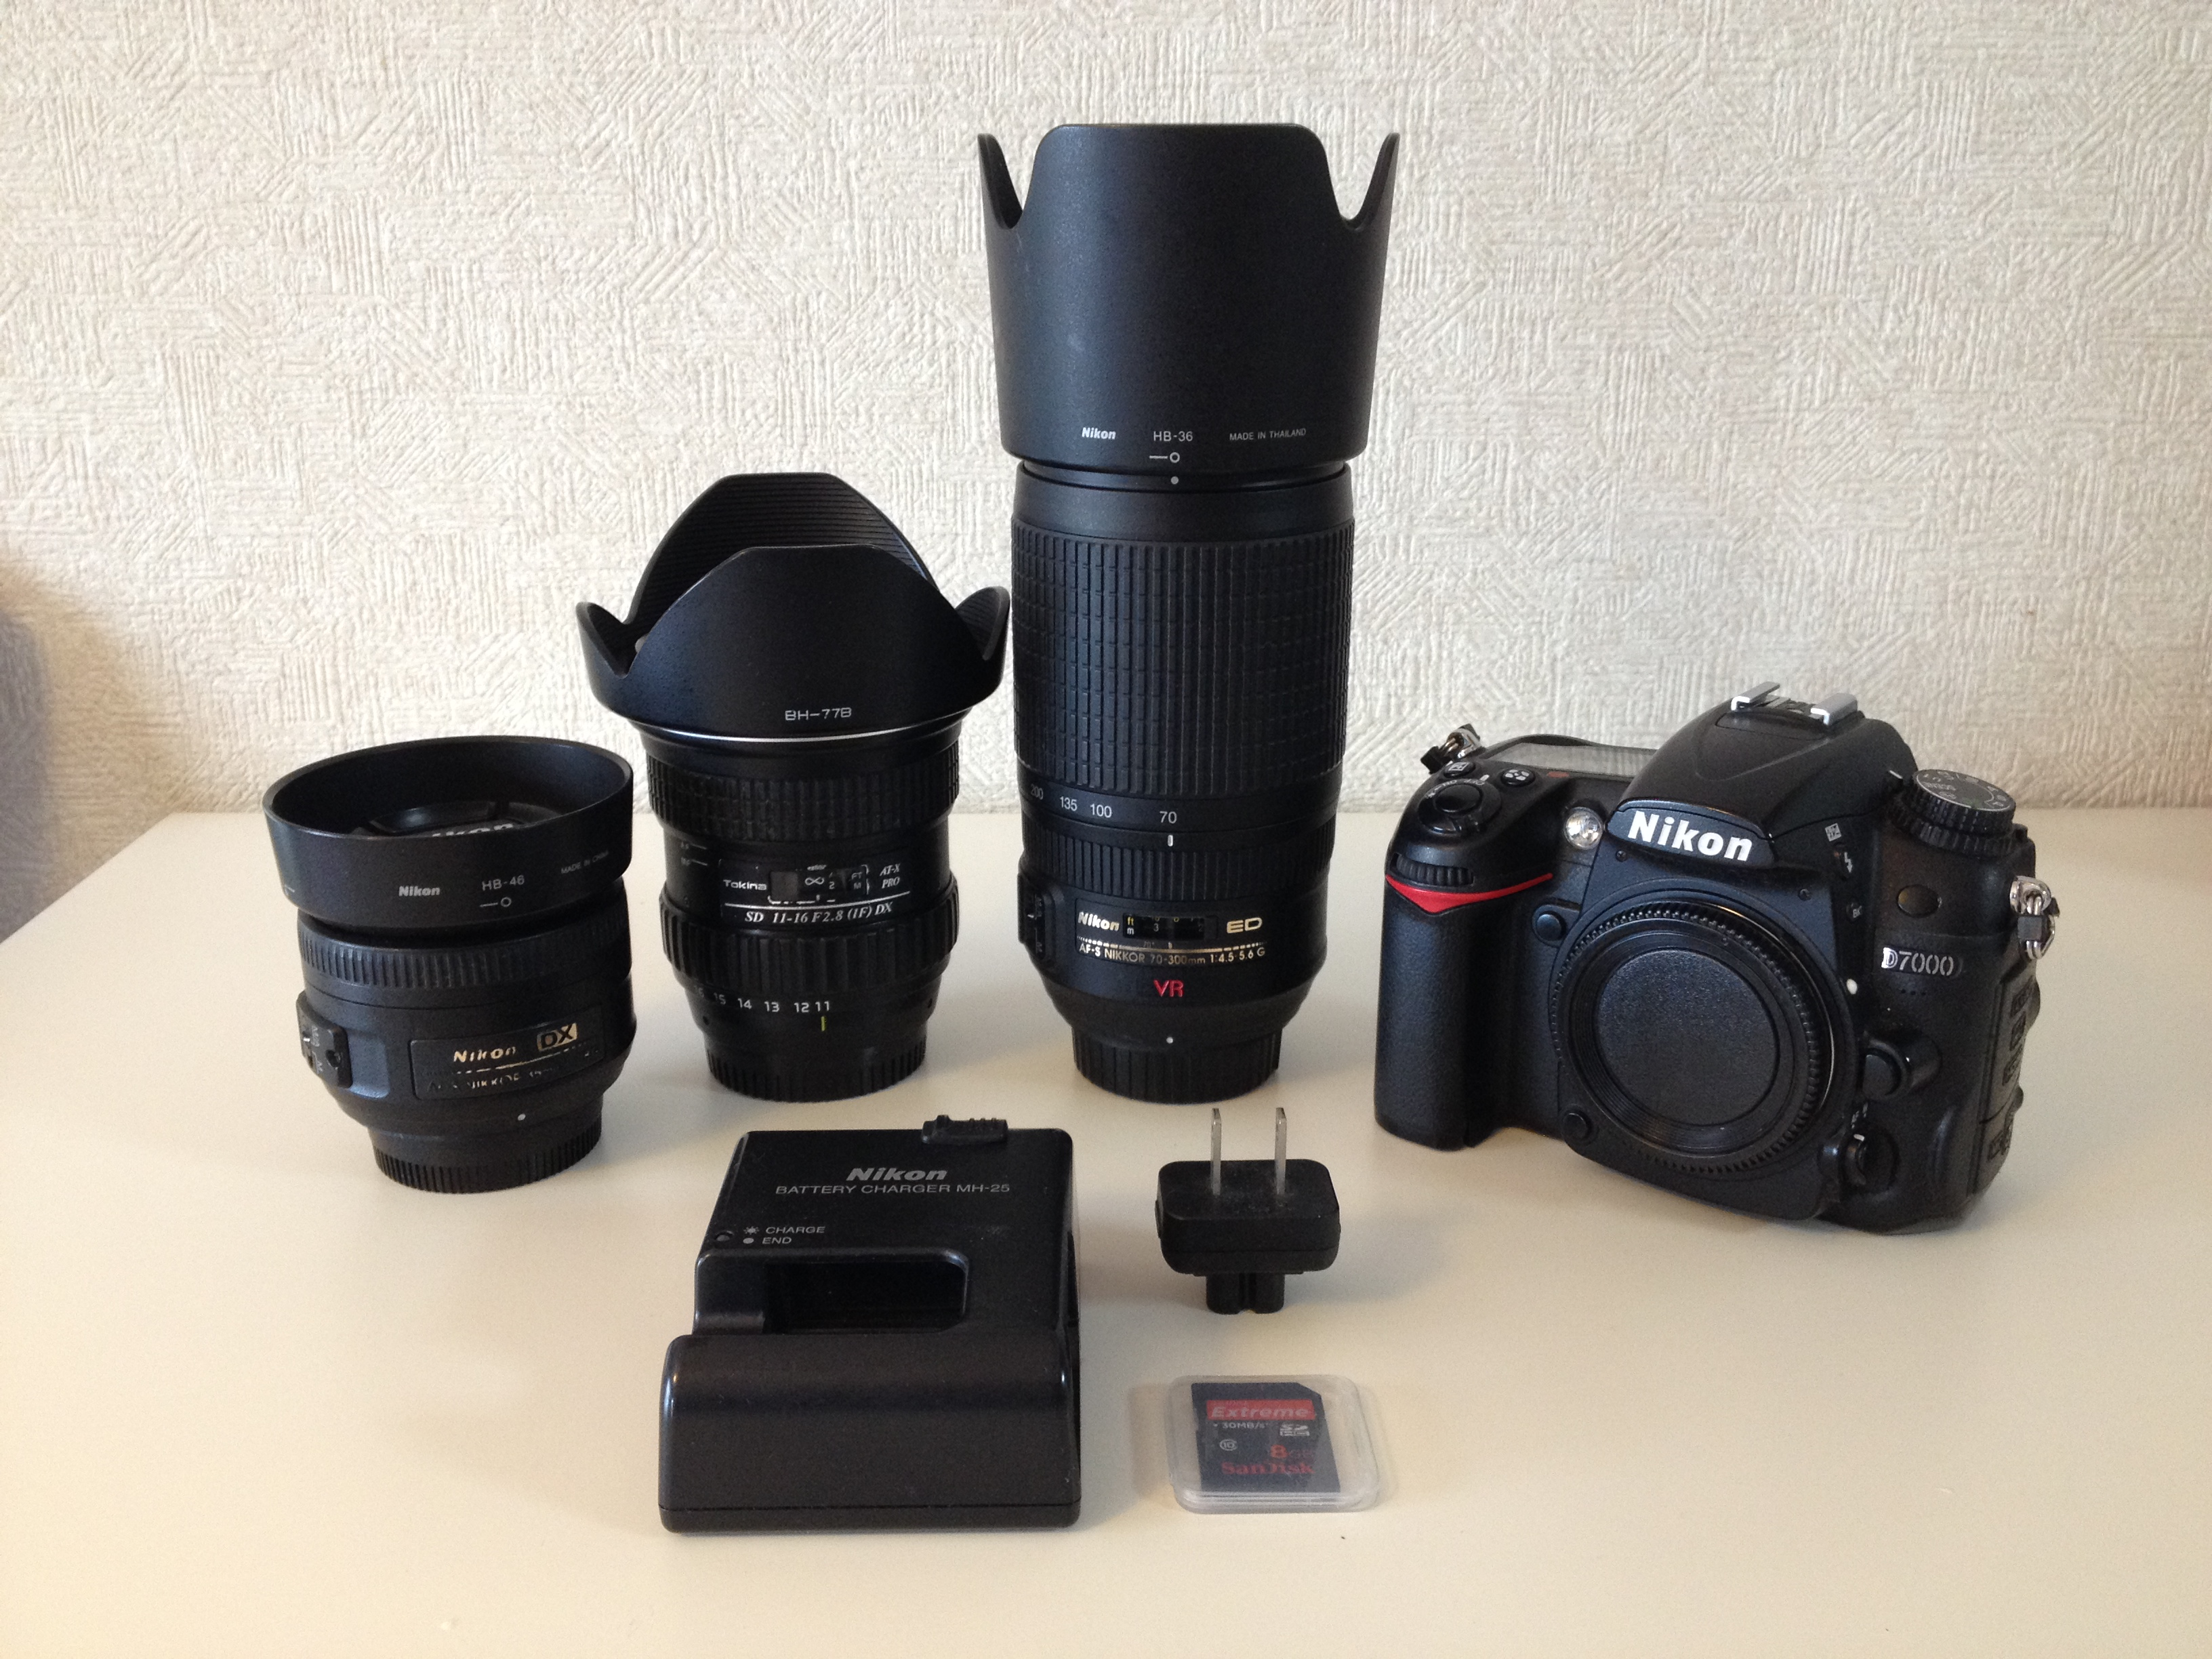 Selling My Nikon D7000 With Three Lenses - Les Taylor Photo